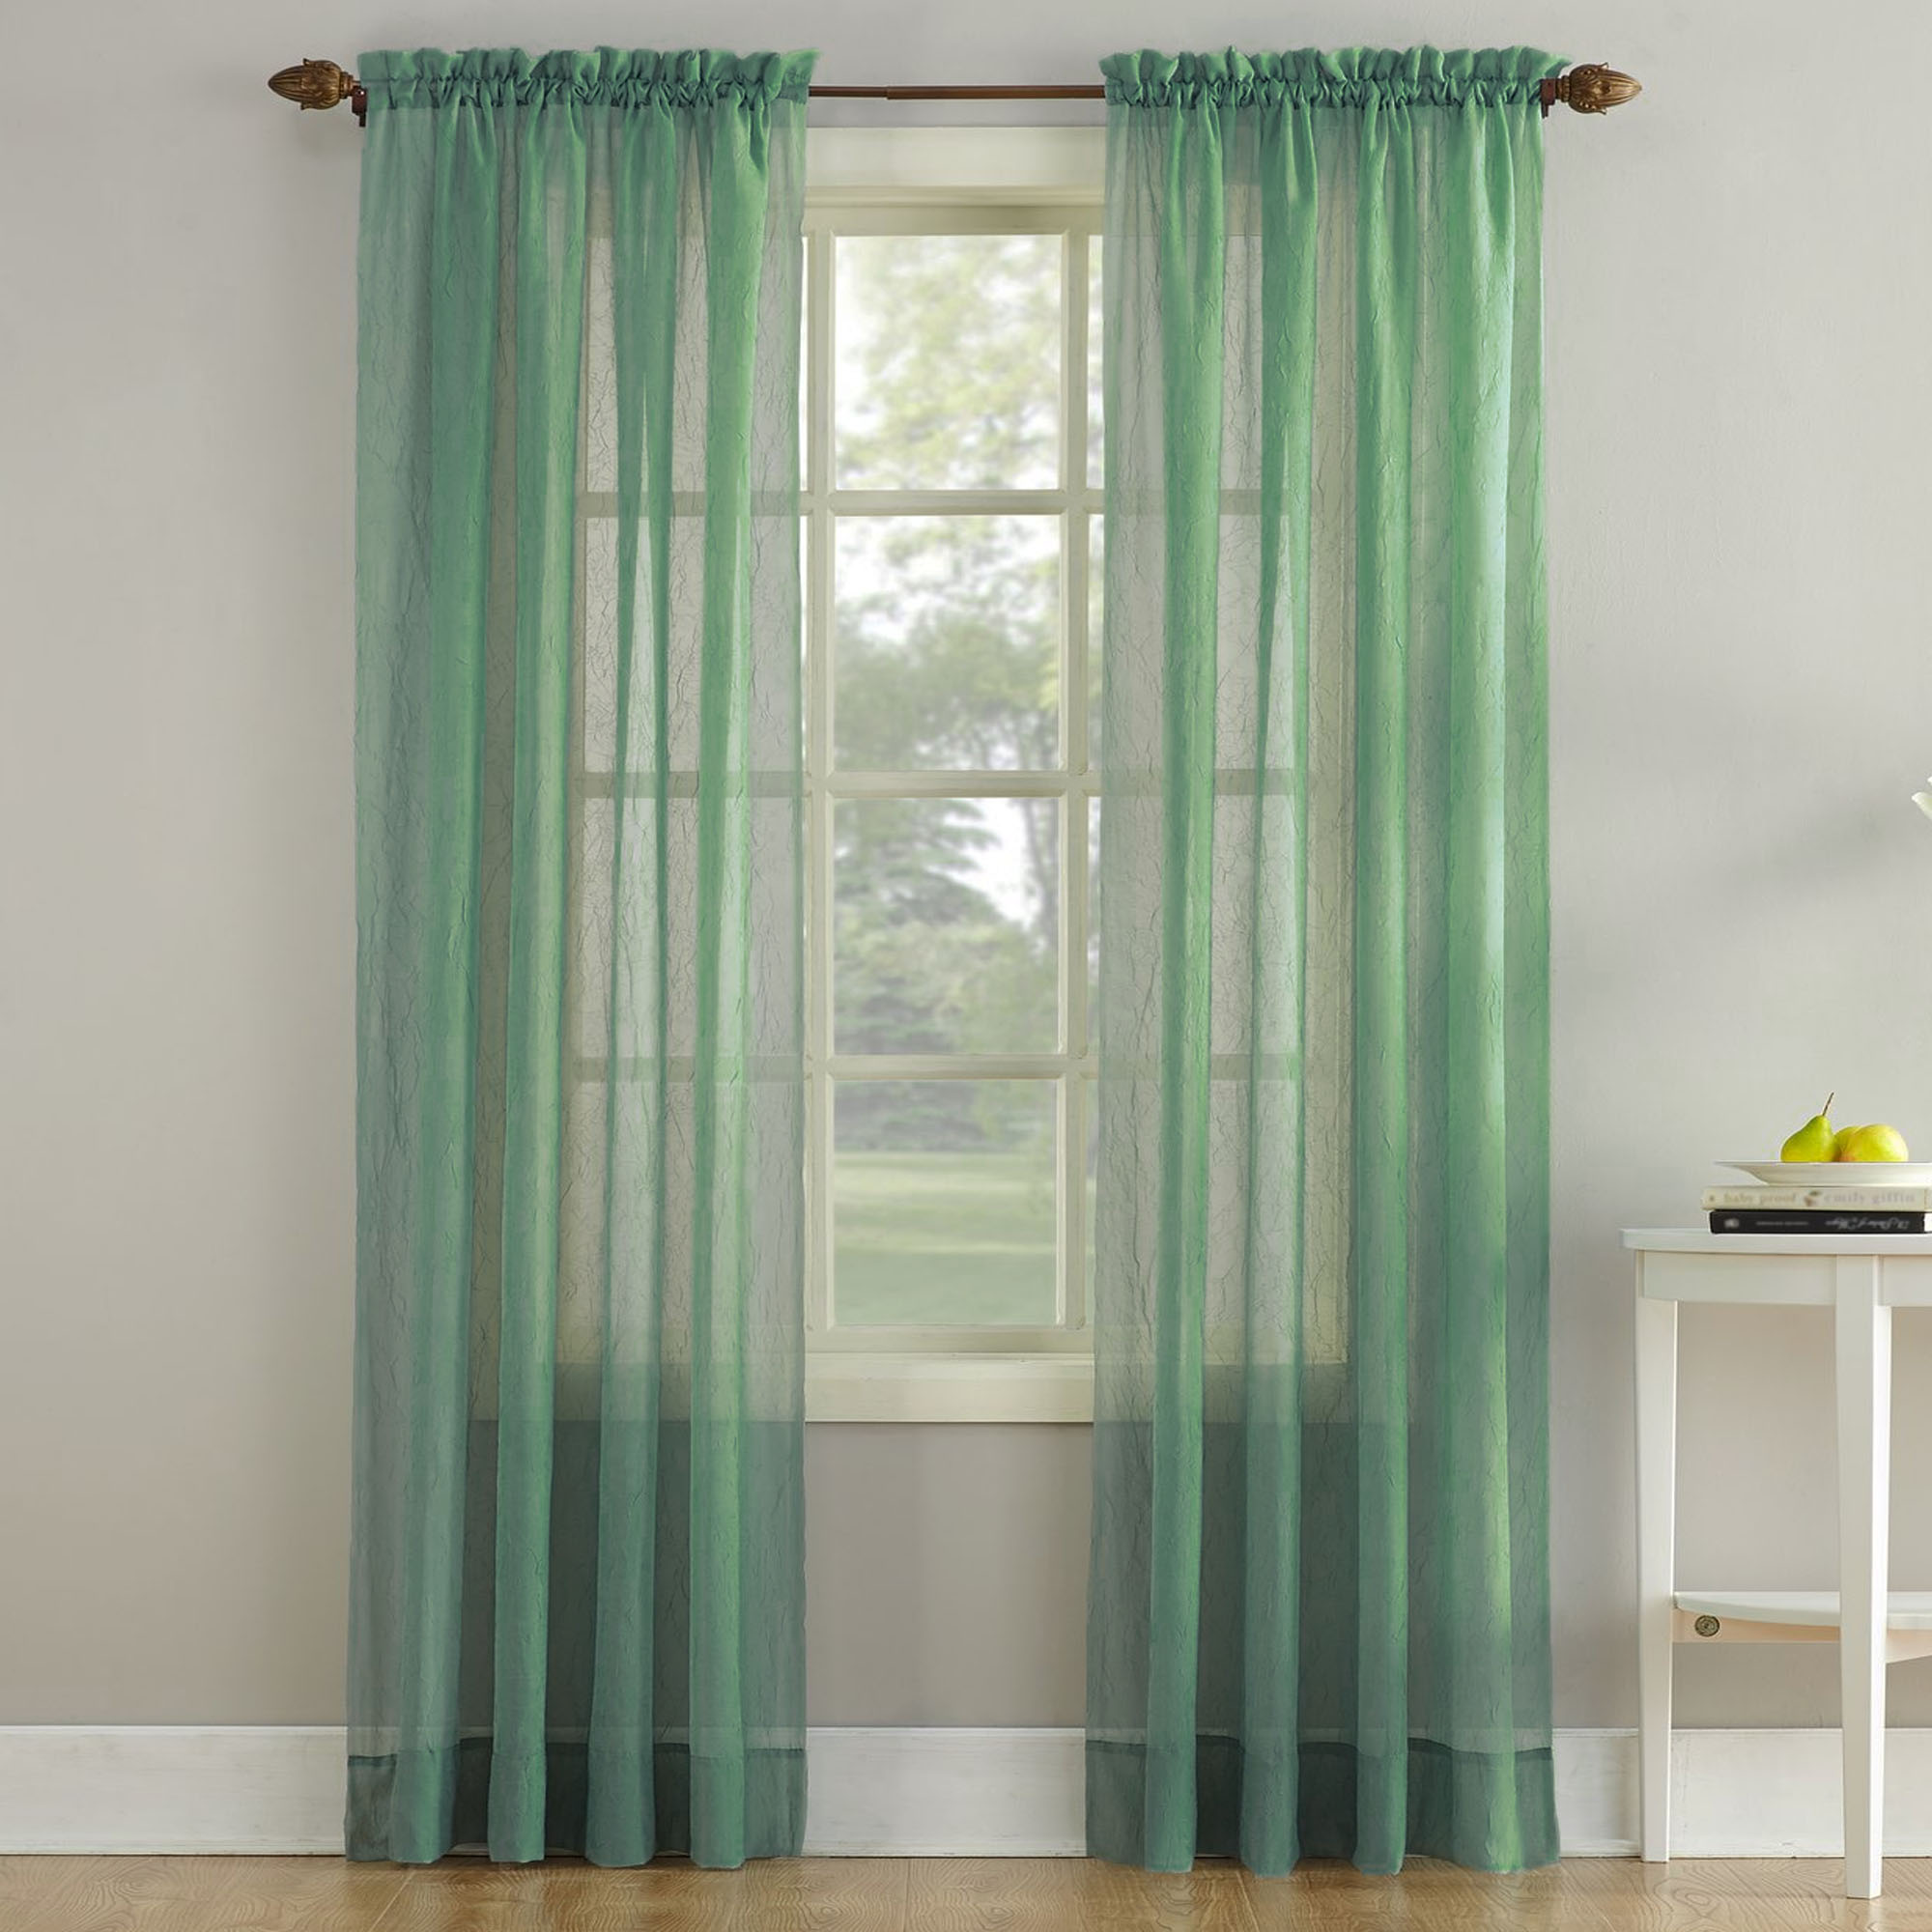 erica crushed sheer voile curtain panel in sage